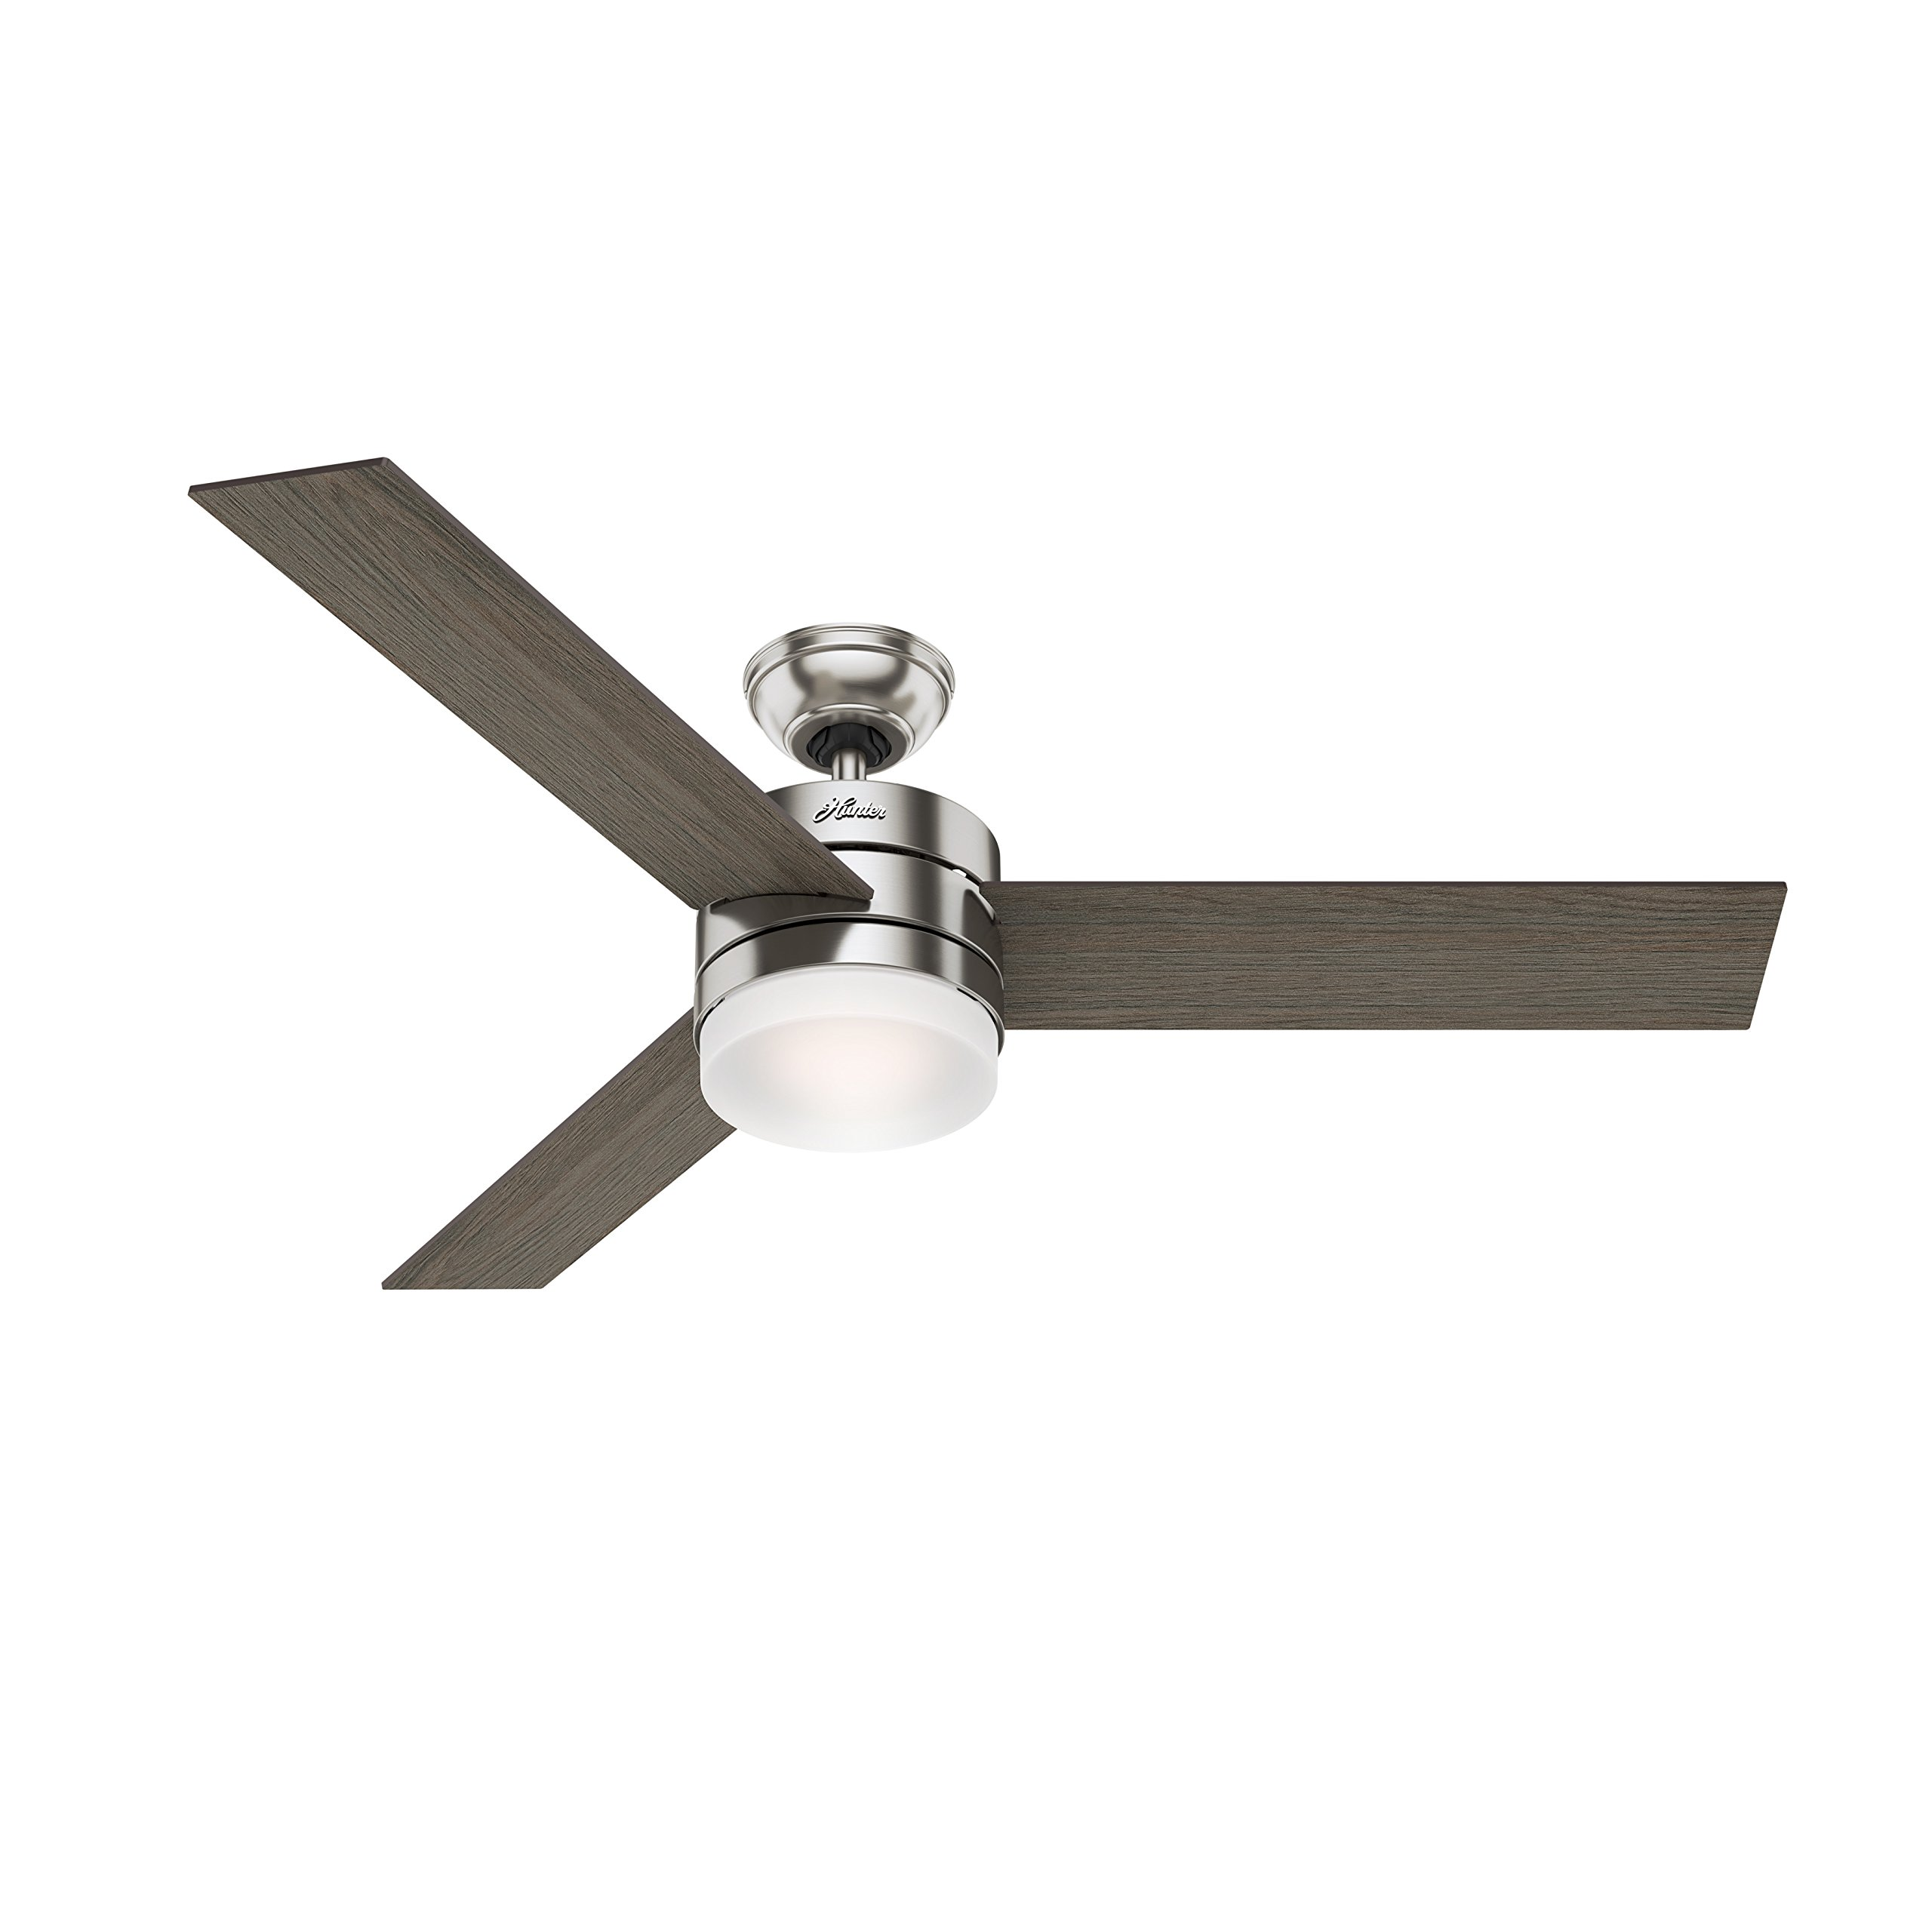 Hunter 54 contemporary ceiling fan with remote control in brushed hunter 54 contemporary ceiling fan with remote control in brushed nickel certified refurbished cc5c91c61 ceiling fans appliances tibs mozeypictures Choice Image